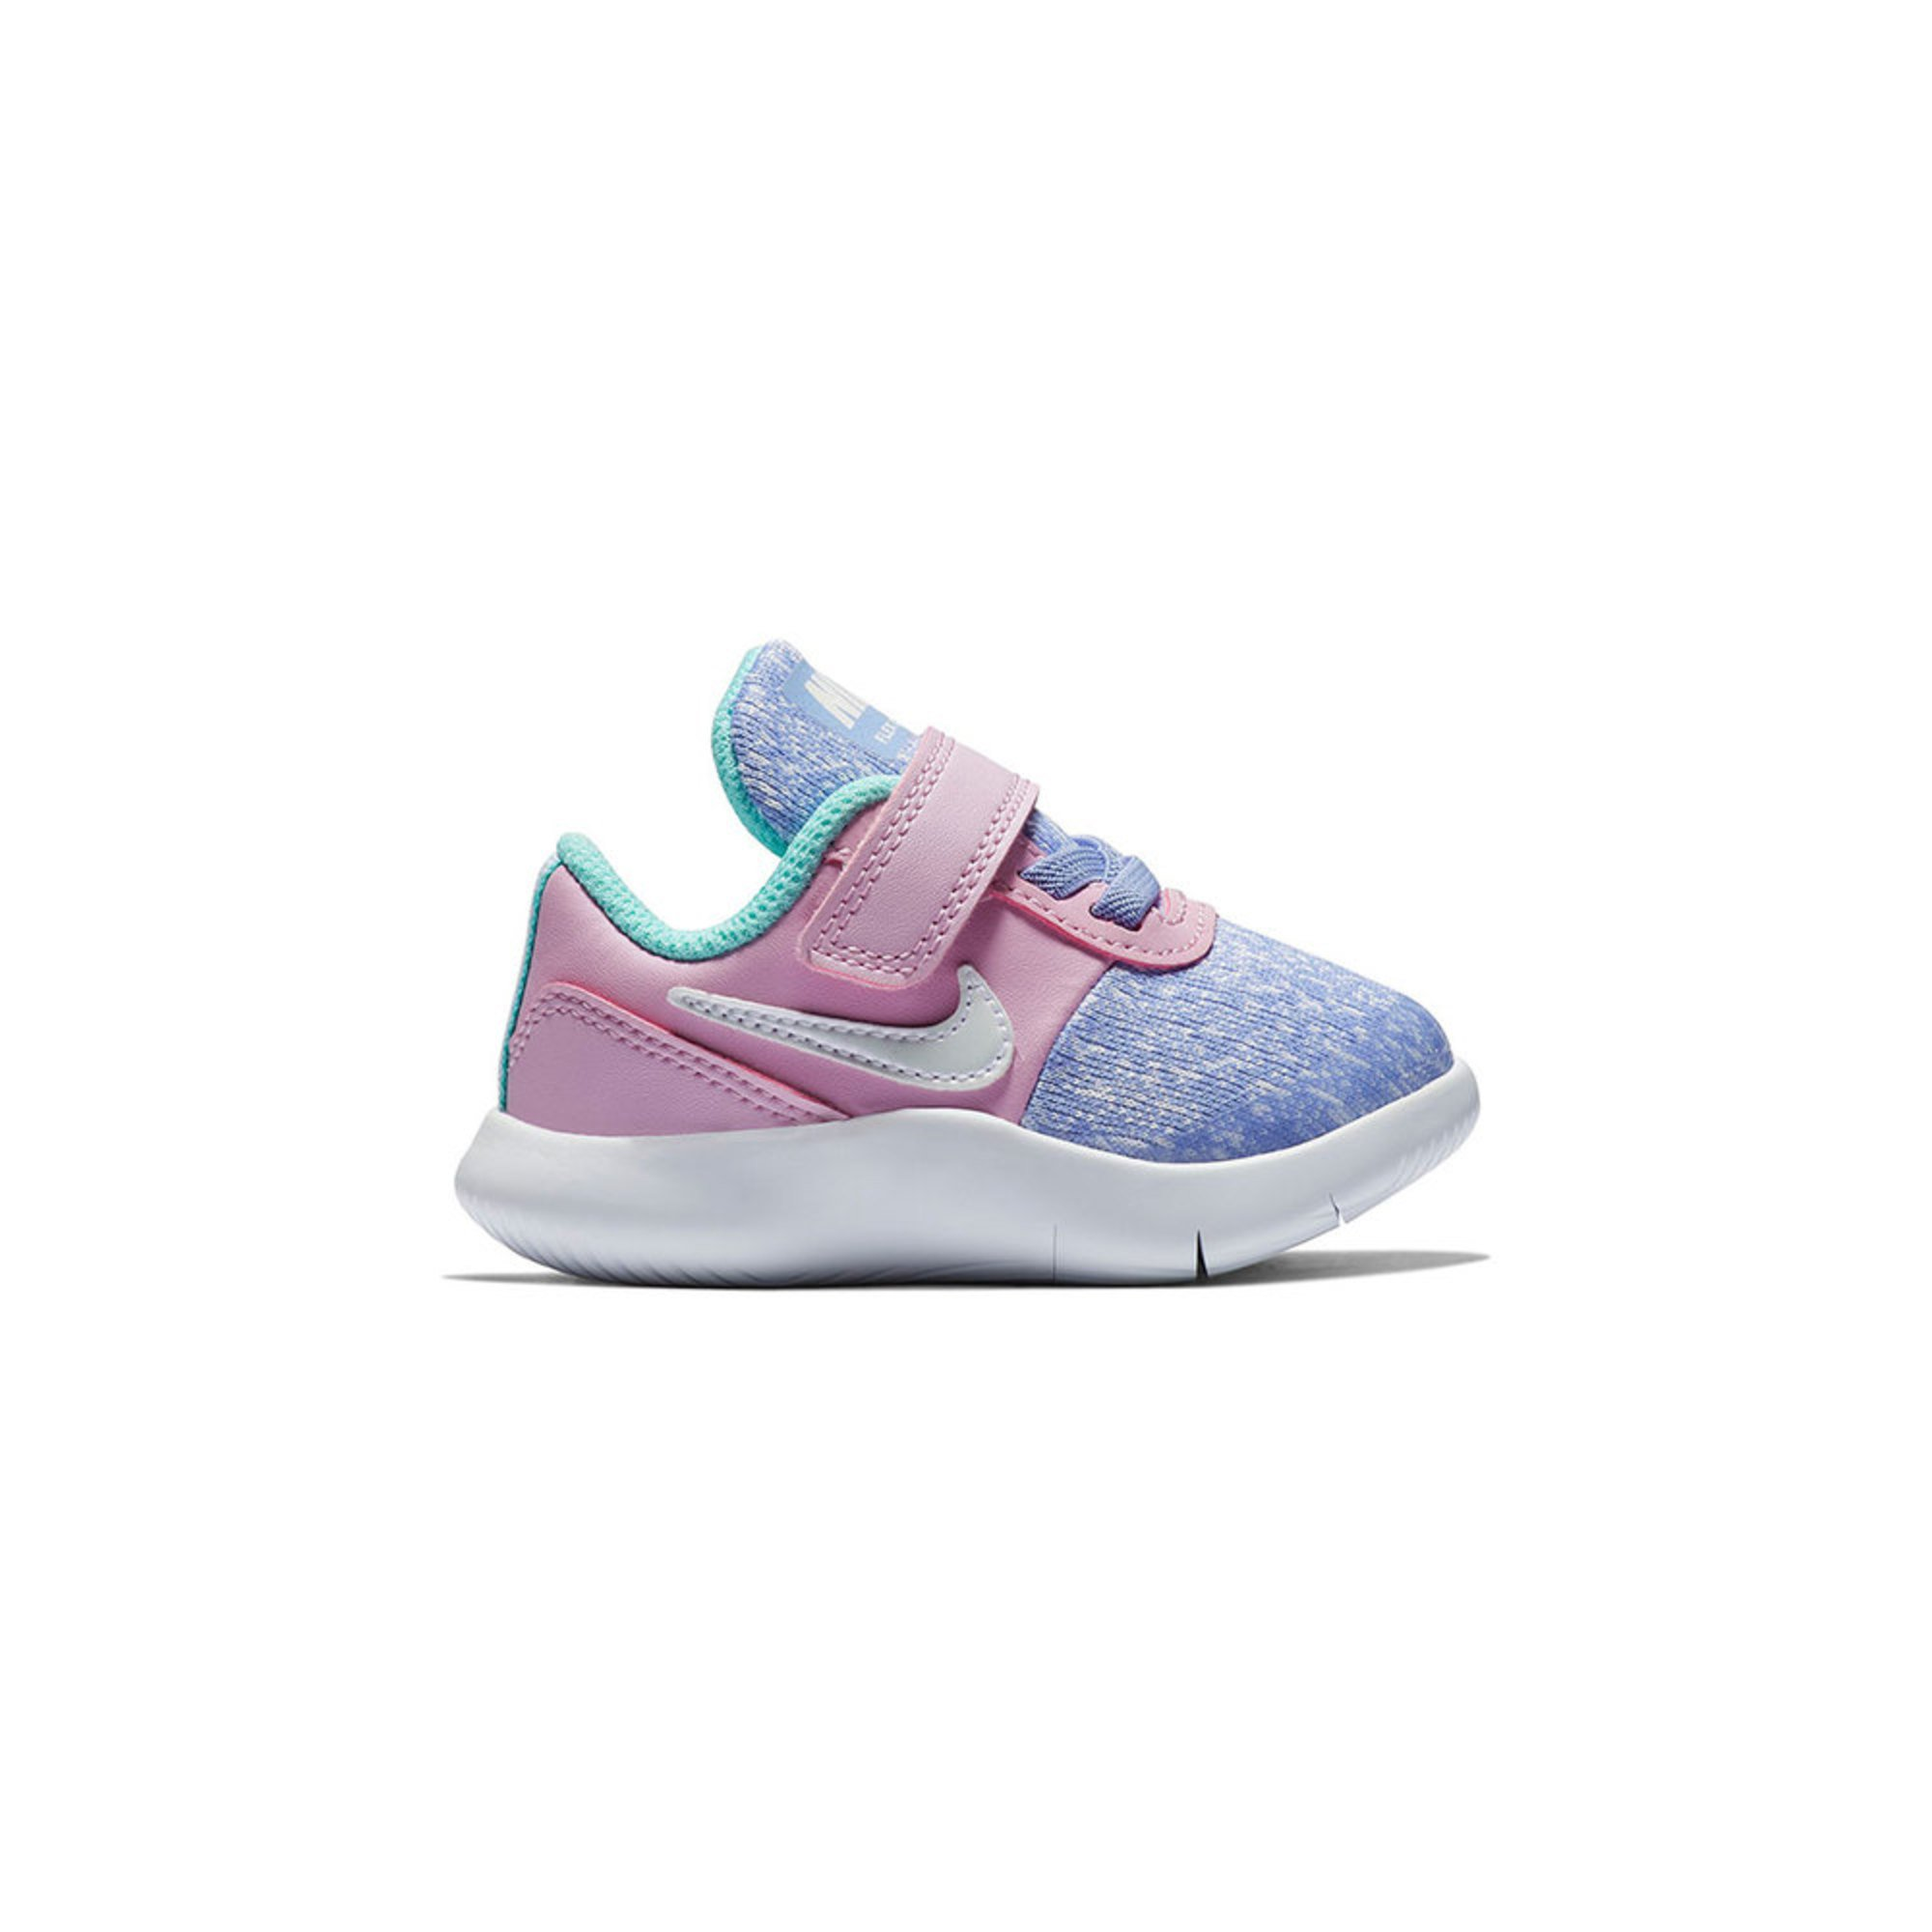 29ca739cffff9 Nike. Nike Girls Flex Contact Running Shoe (Infant Toddler)